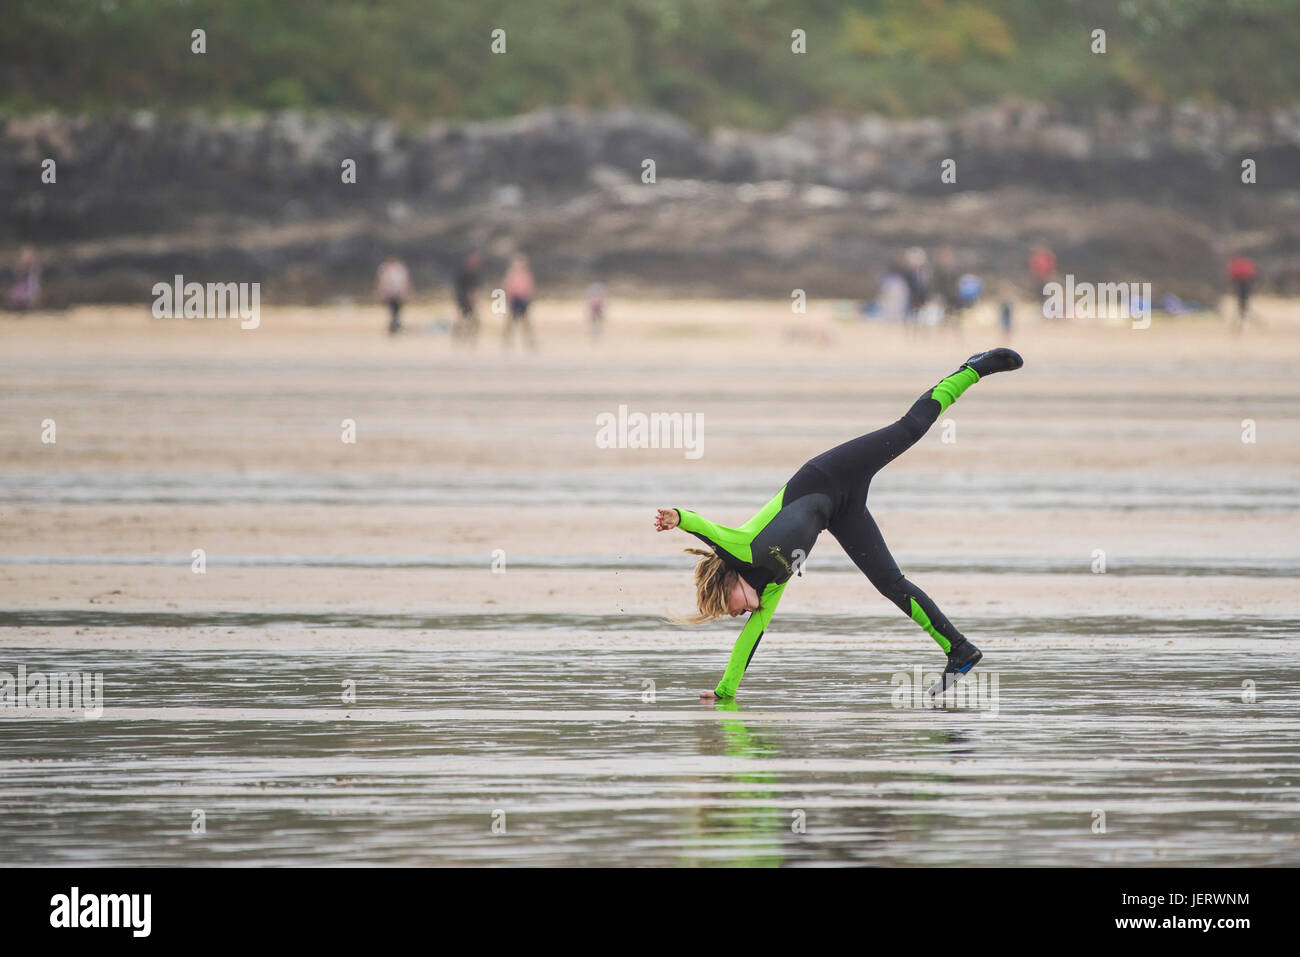 A young girl wearing a wetsuit doing a cartwheel on Fistral Beach in Newquay, Cornwall. - Stock Image